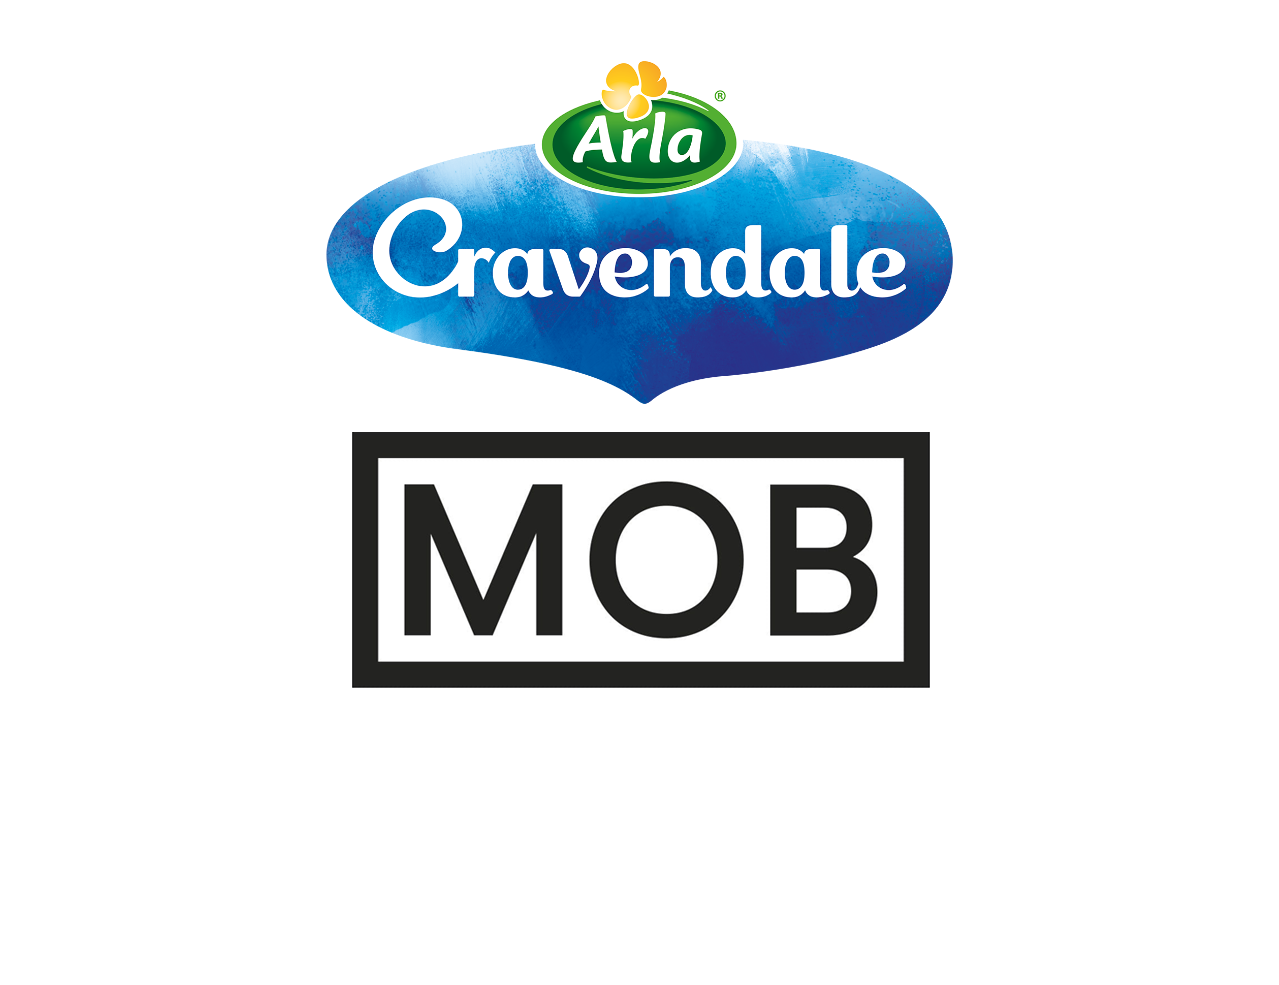 Arla-Cravendale-and-Mob2.png